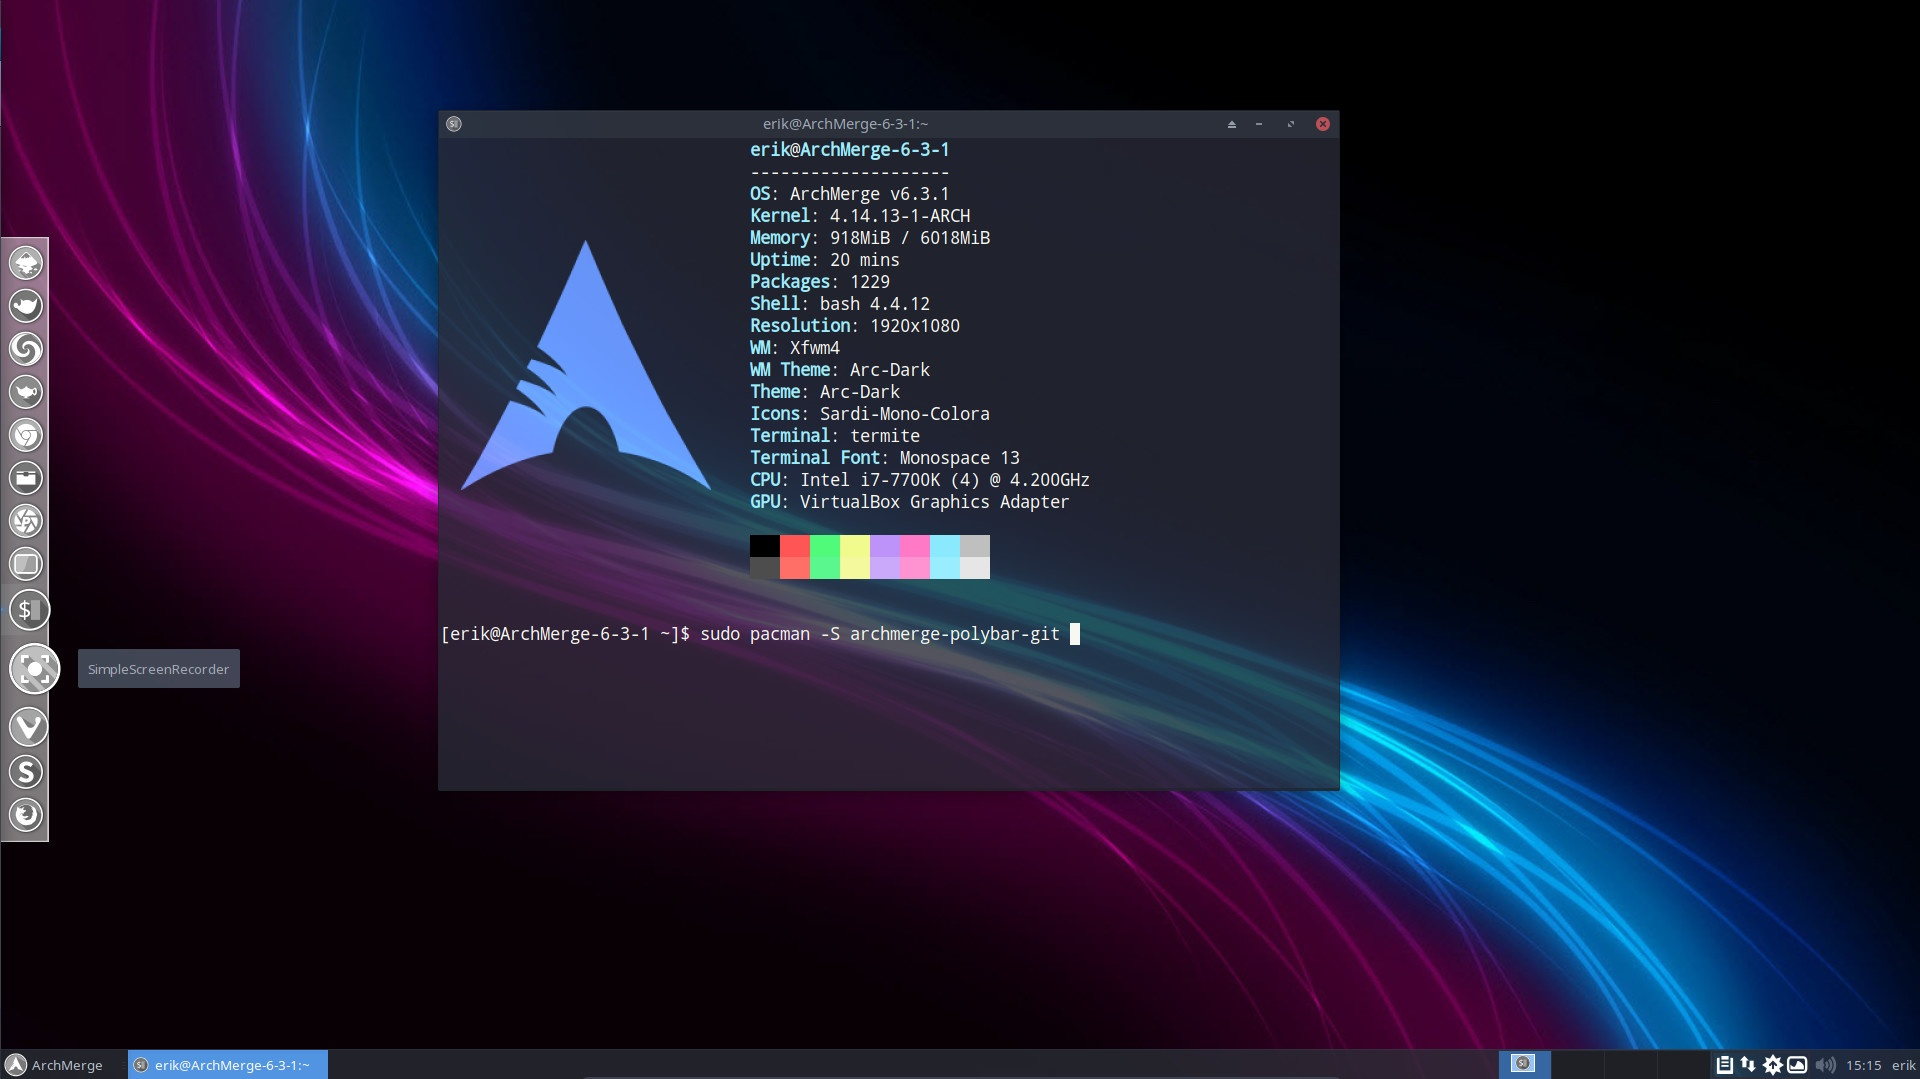 How to install polybar and use it on i3 and openbox